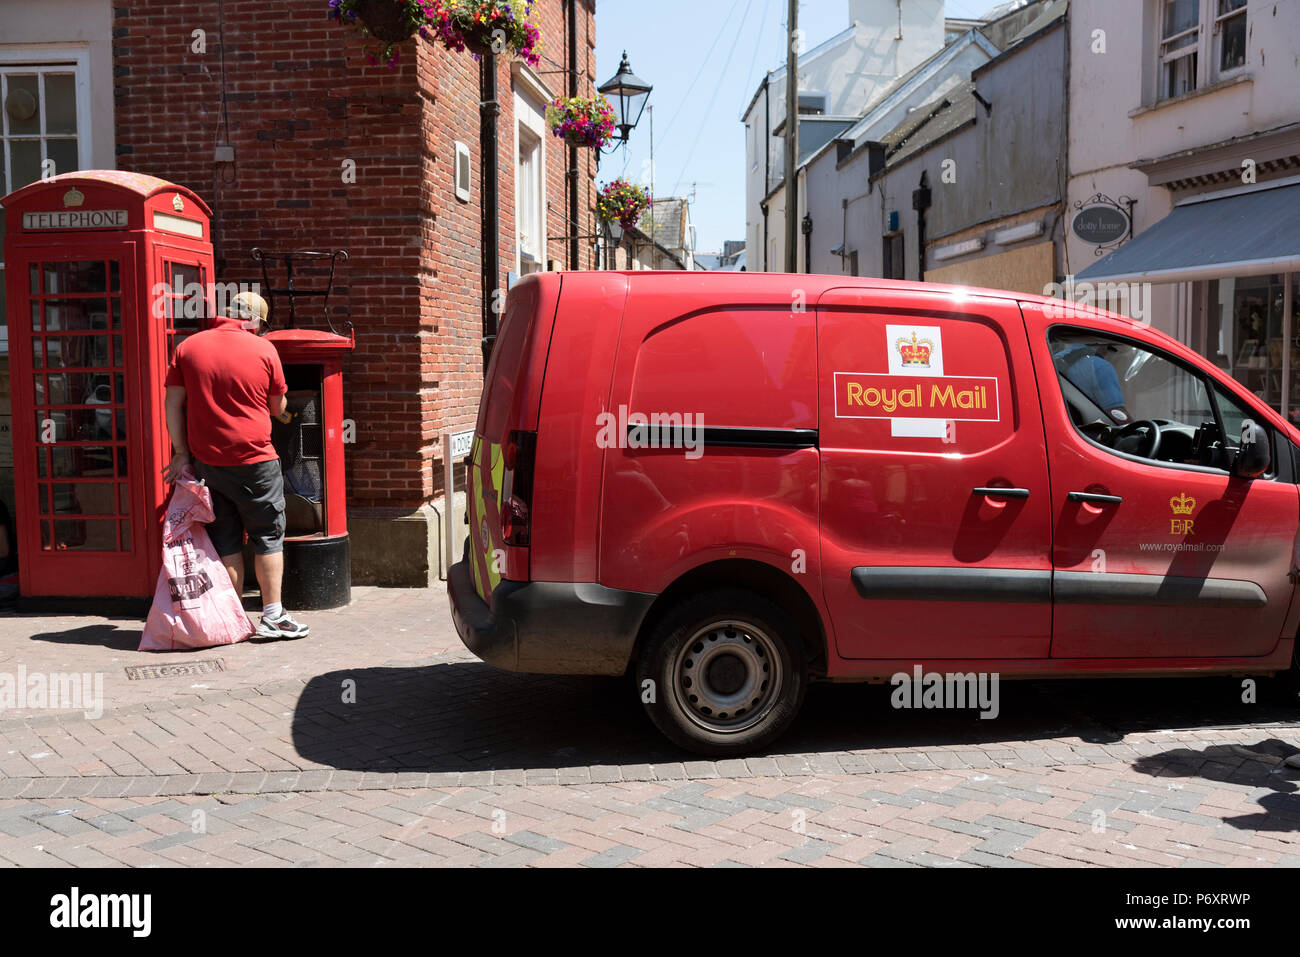 Postal worker emptying a red letterbox in Sidmouth town centre, Devon, UK - Stock Image